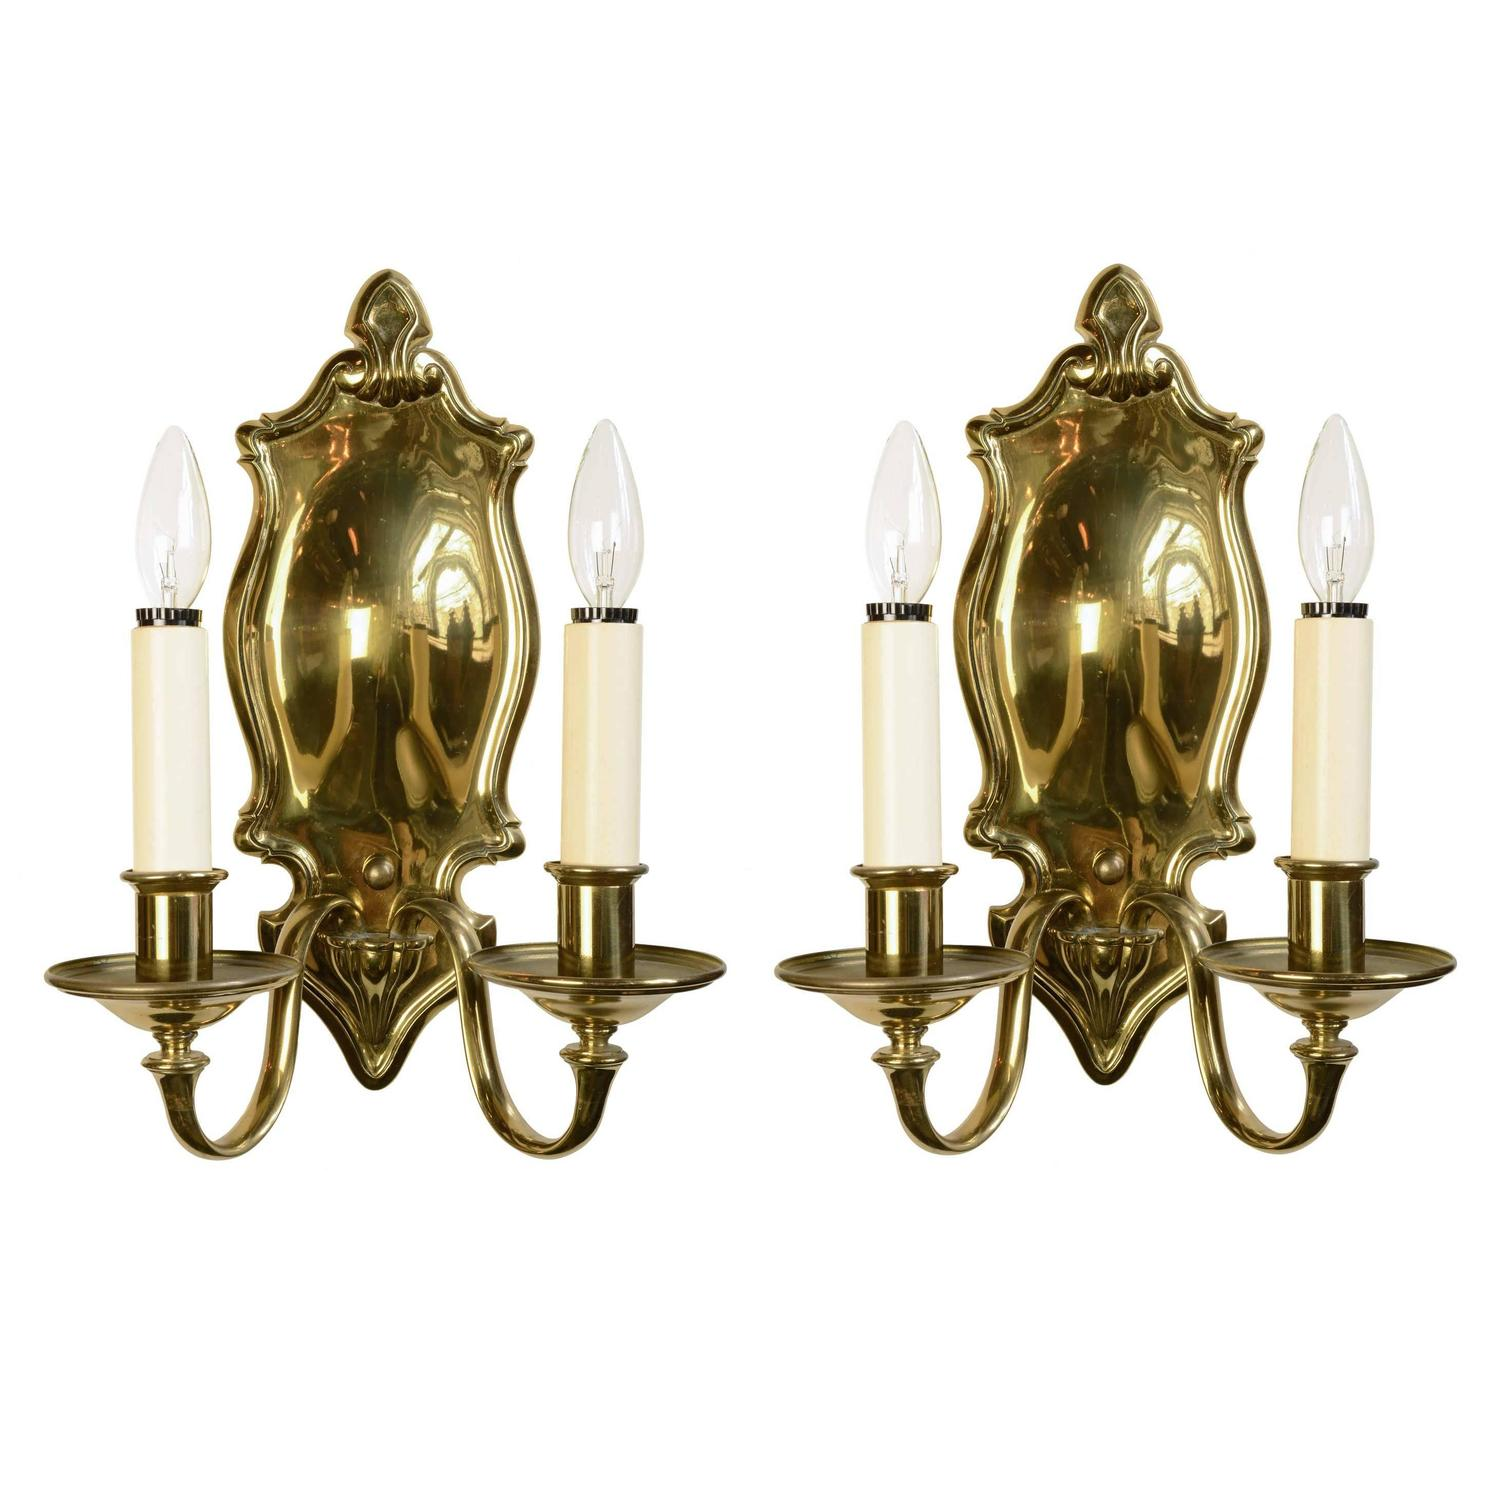 Signed bradley and hubbard colonial revival brass sconce pair for signed bradley and hubbard colonial revival brass sconce pair for sale at 1stdibs arubaitofo Image collections